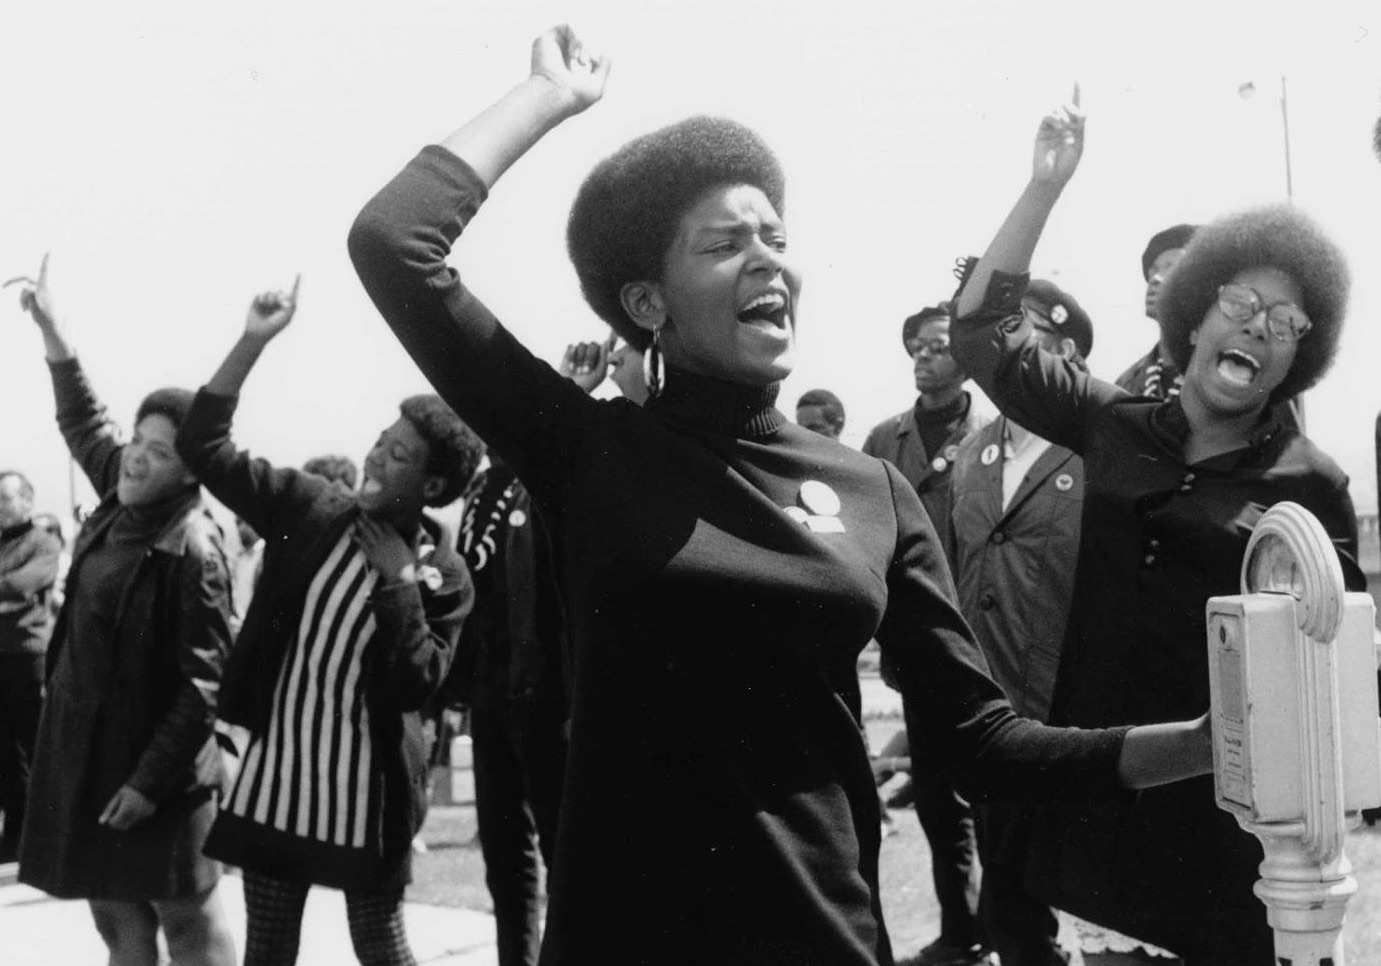 the importance of the black panther party in history The black panther party was established in 1966 by huey p newton, bobby seale and david hilliard in oakland, ca the three college students created the organization to provide protection to african-americans against police brutality within its first few years, the group gained national and.